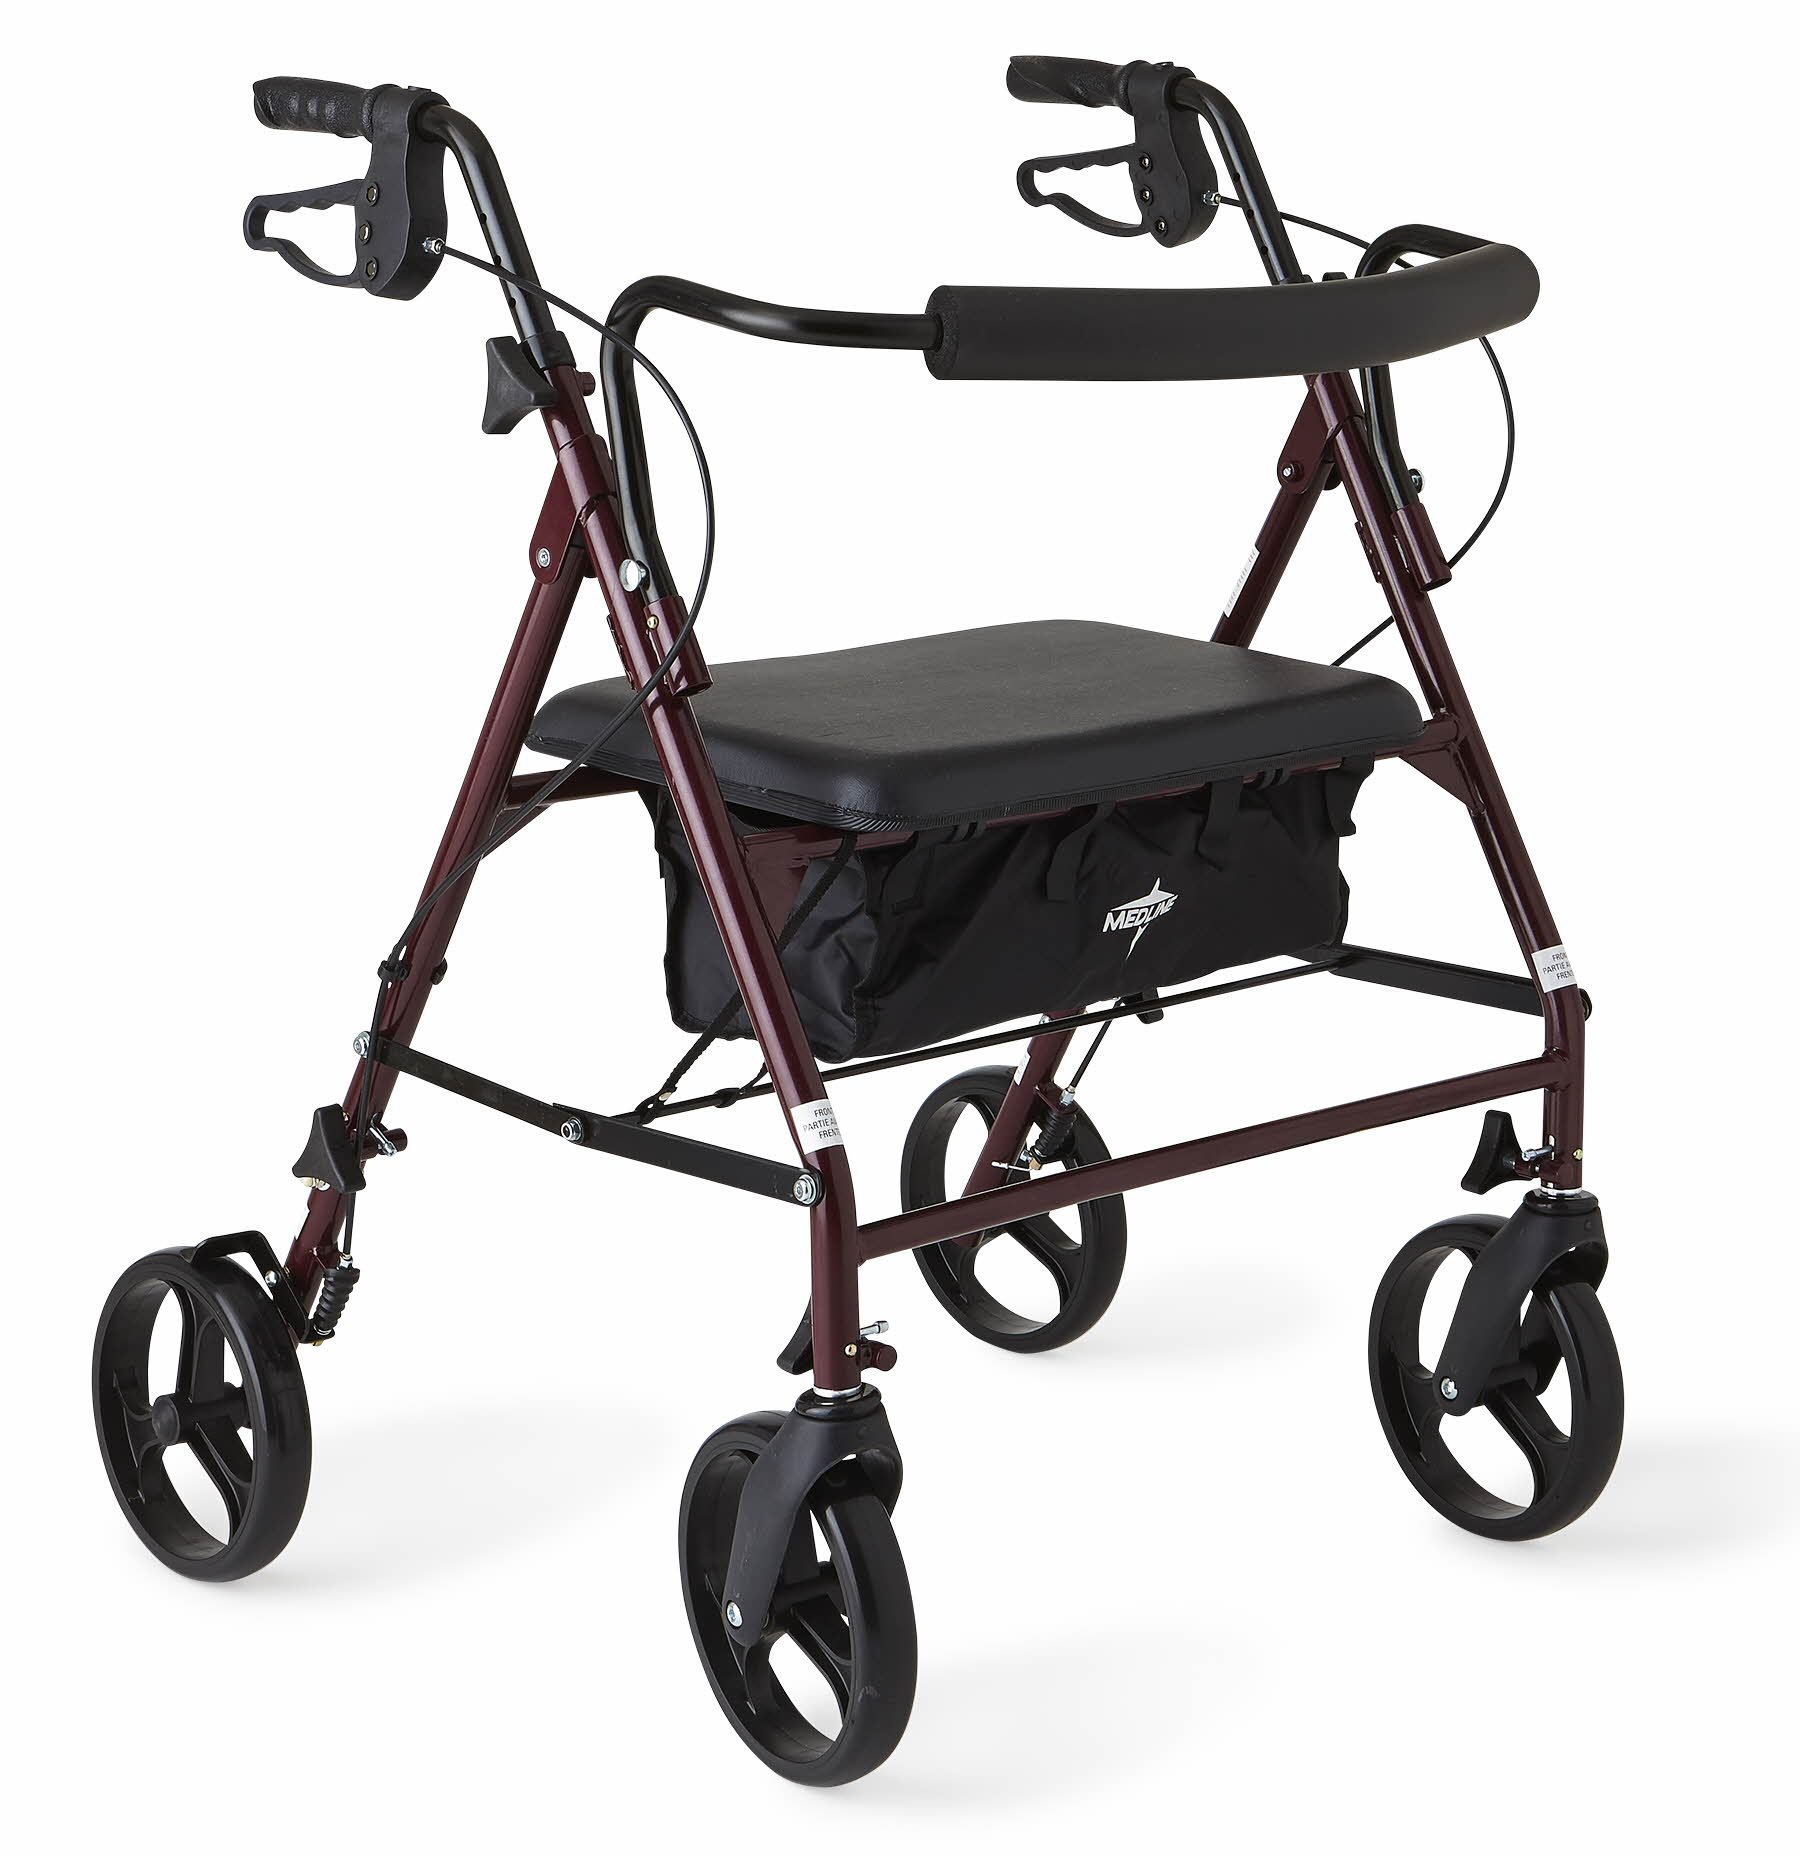 Medline Heavy Duty Rollator Walker with Seat, Bariatric Rolling Walker Supports up to 500 lbs, Large 8-inch Wheels, Burgundy by Medline